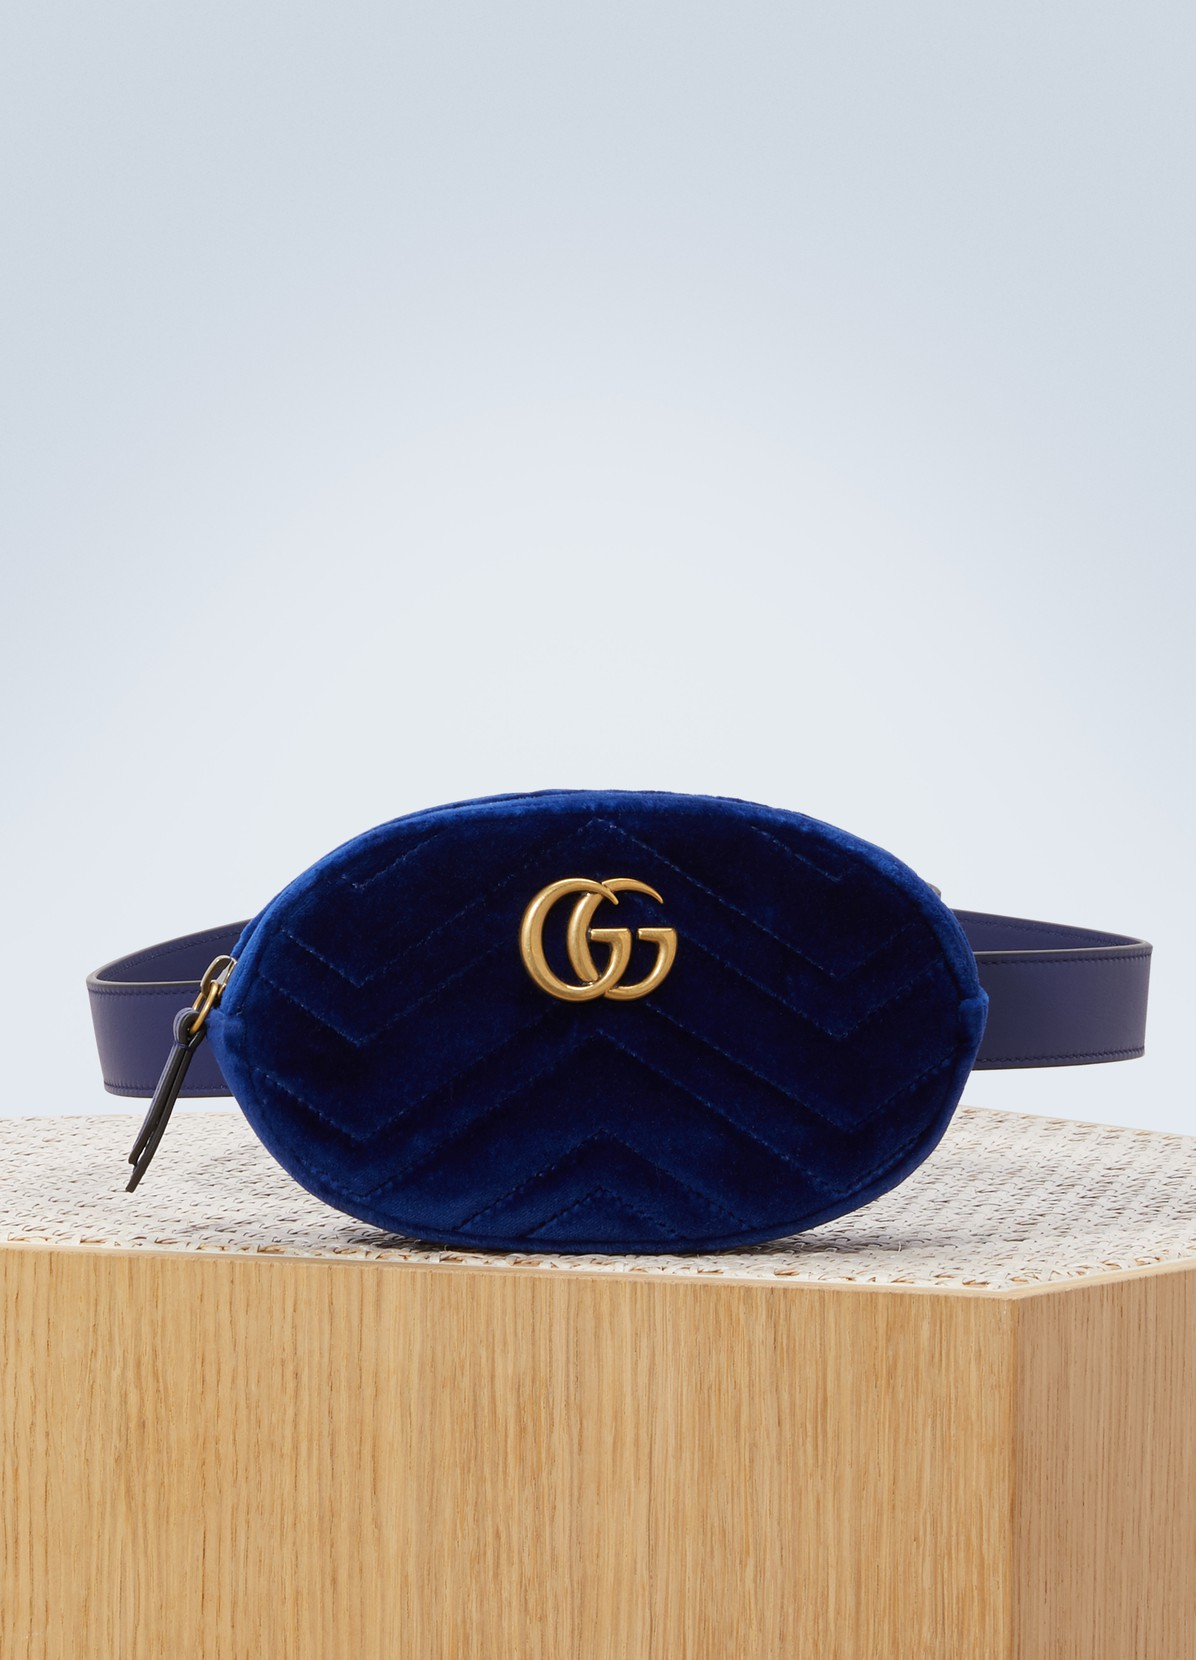 95bfd10a75c Gucci Sac Ceinture Marmont